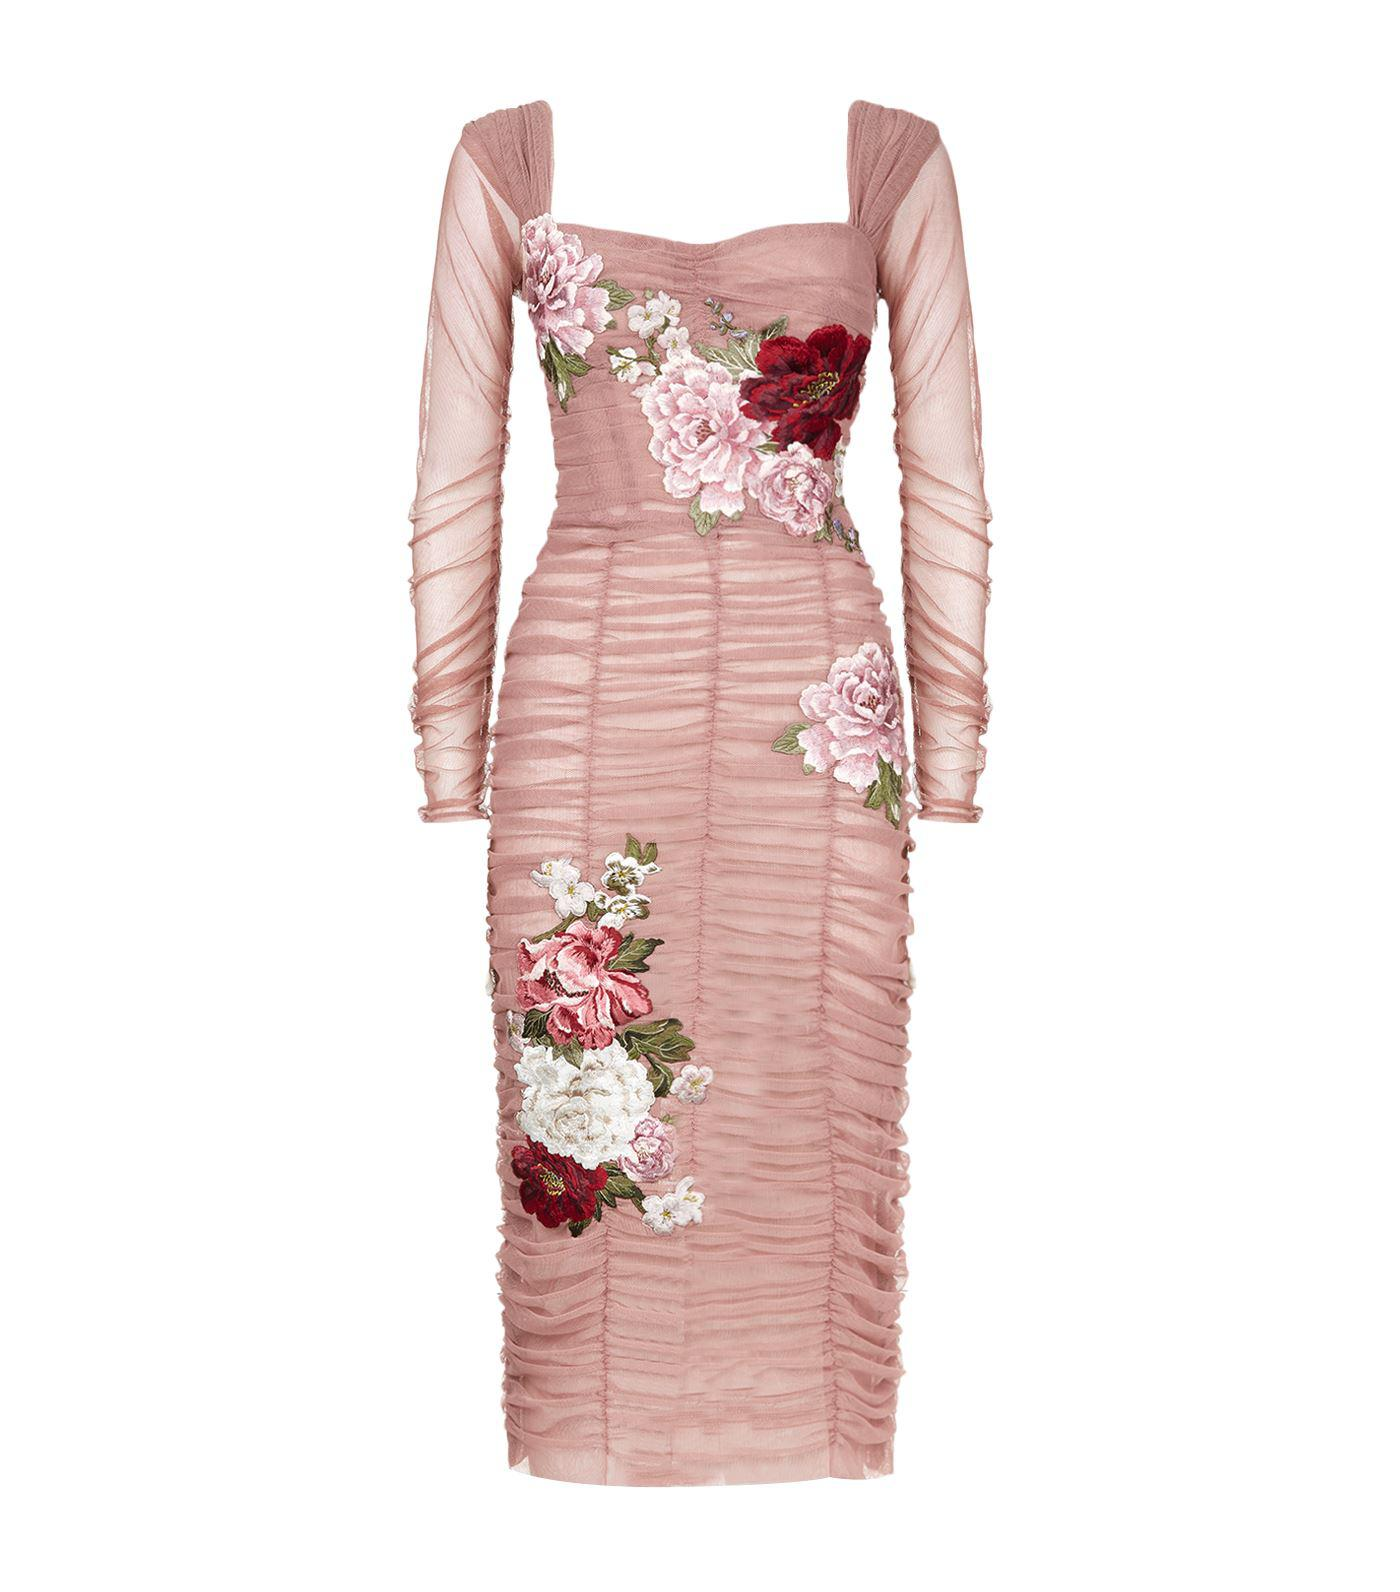 cdbcfa03ab2a Dolce   Gabbana Ruched Tulle Midi Dress in Pink - Lyst